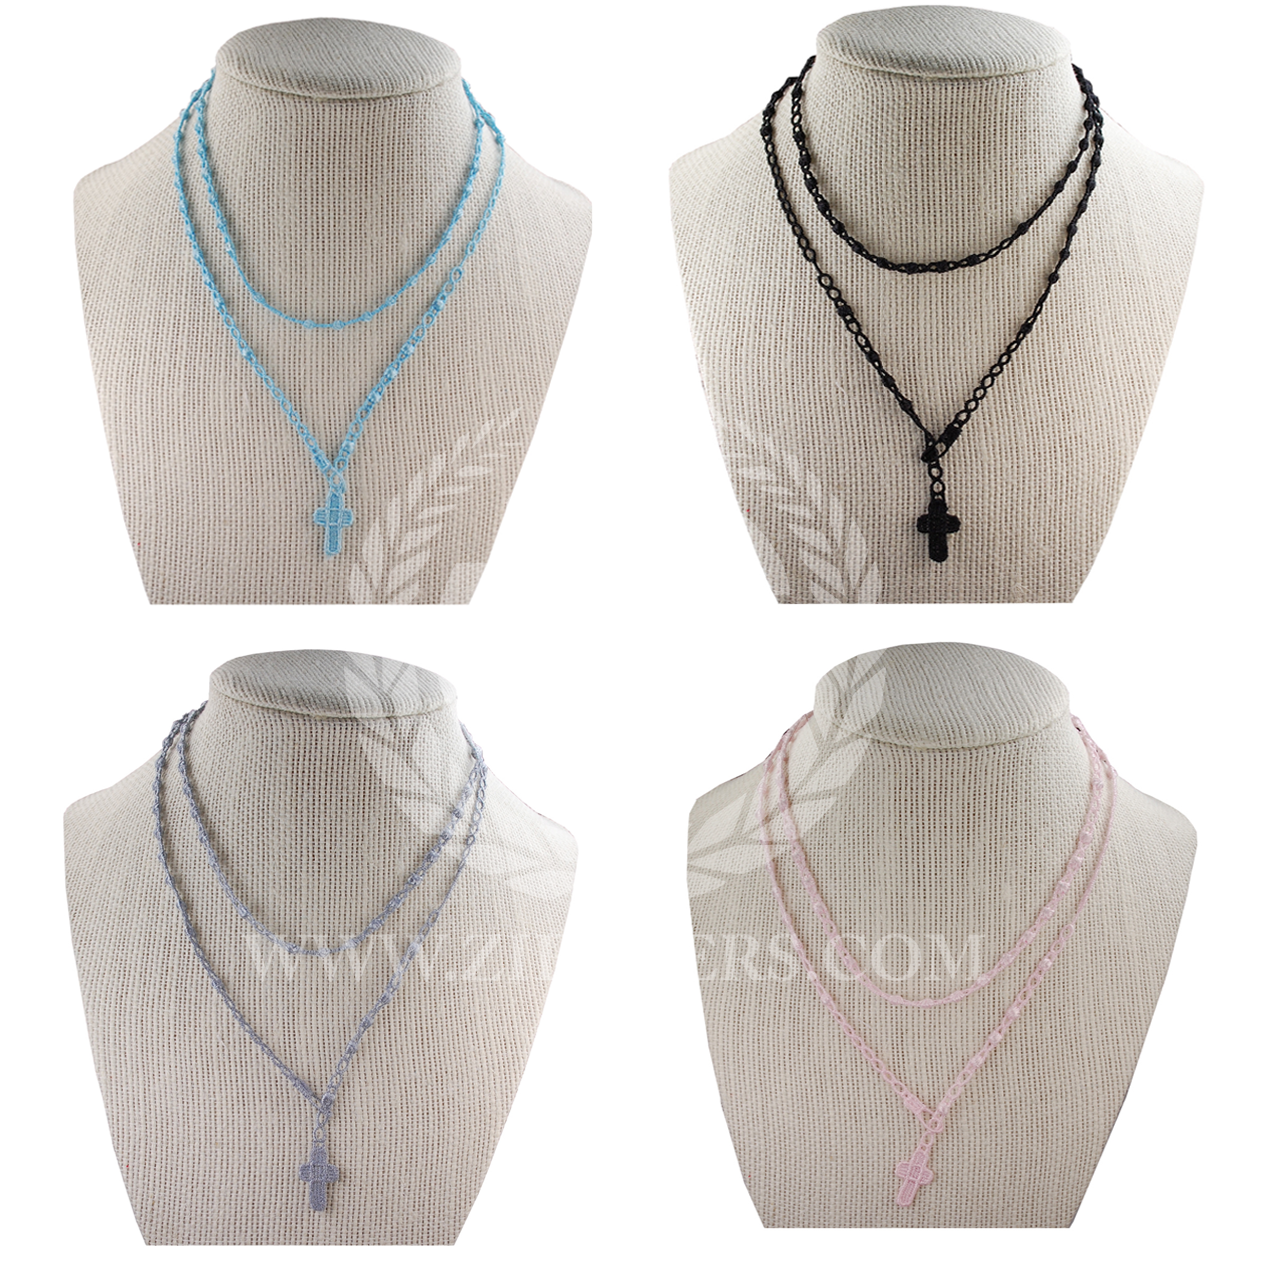 8544e6e20 Rosary Jewelry   Macramé Style Knotted Cord   Necklace or Bracelet   4  Colors   BR8 - F.C. Ziegler Company